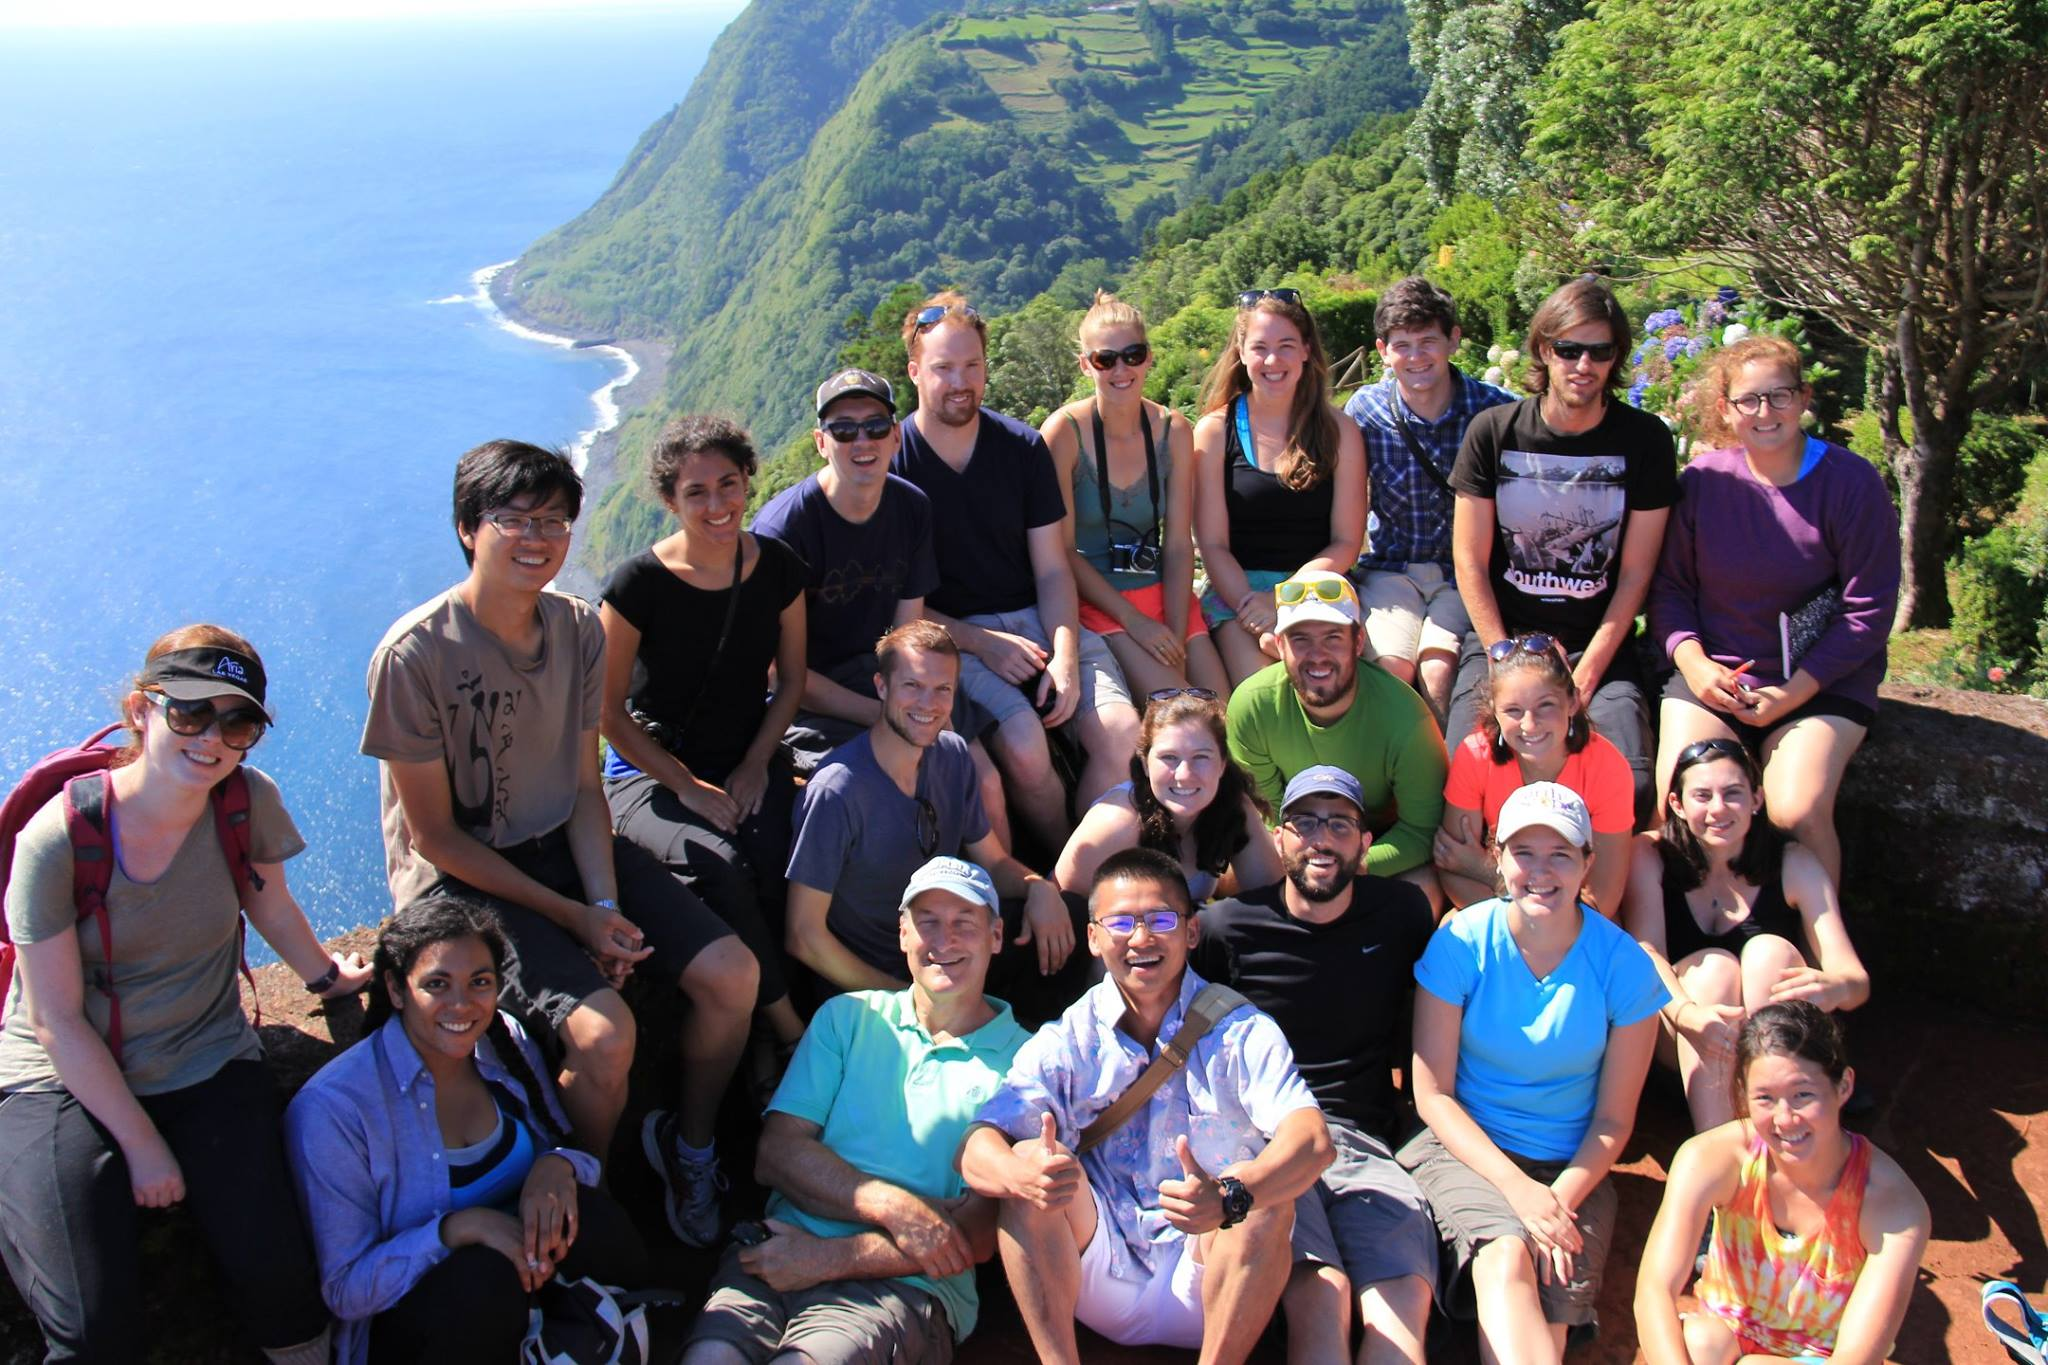 Group photo at the Edge of the Earth, Nordeste, São Miguel, Azores.